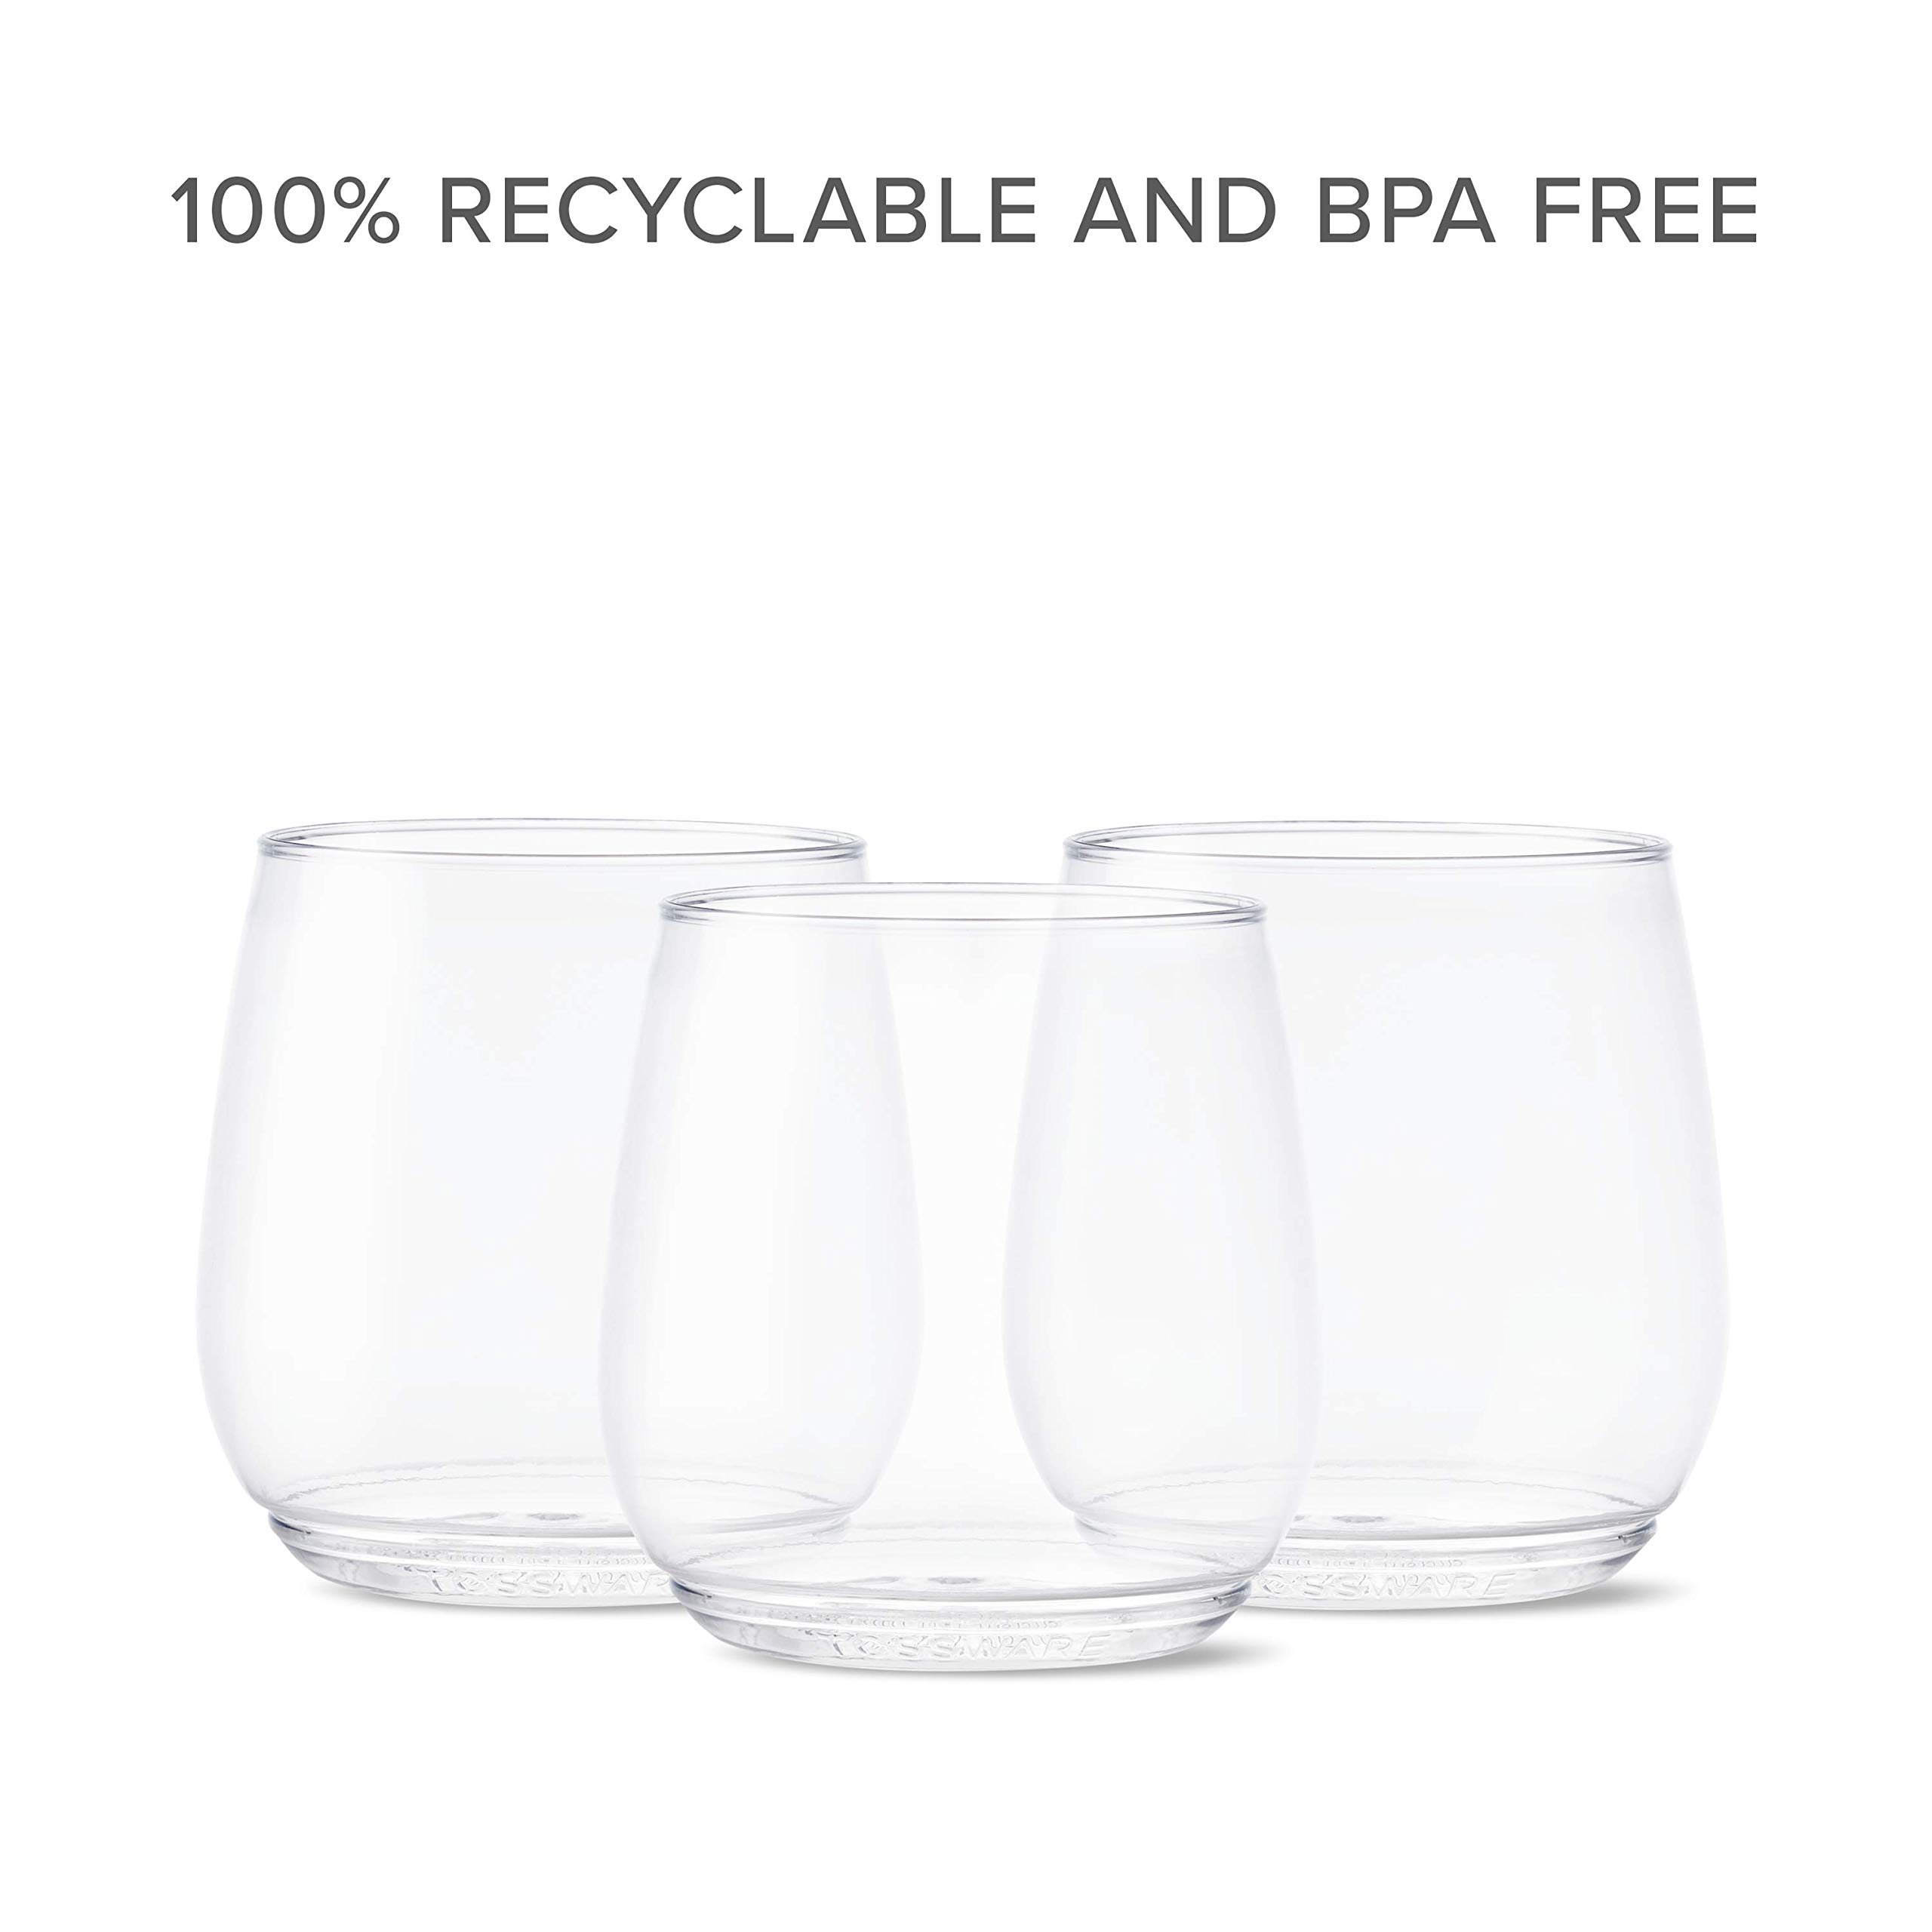 TOSSWARE 12oz Tumbler Jr - Set of 252 recyclable cocktail and whiskey plastic cup - stemless, shatterproof and BPA-free, Clear Glass by TOSSWARE (Image #7)